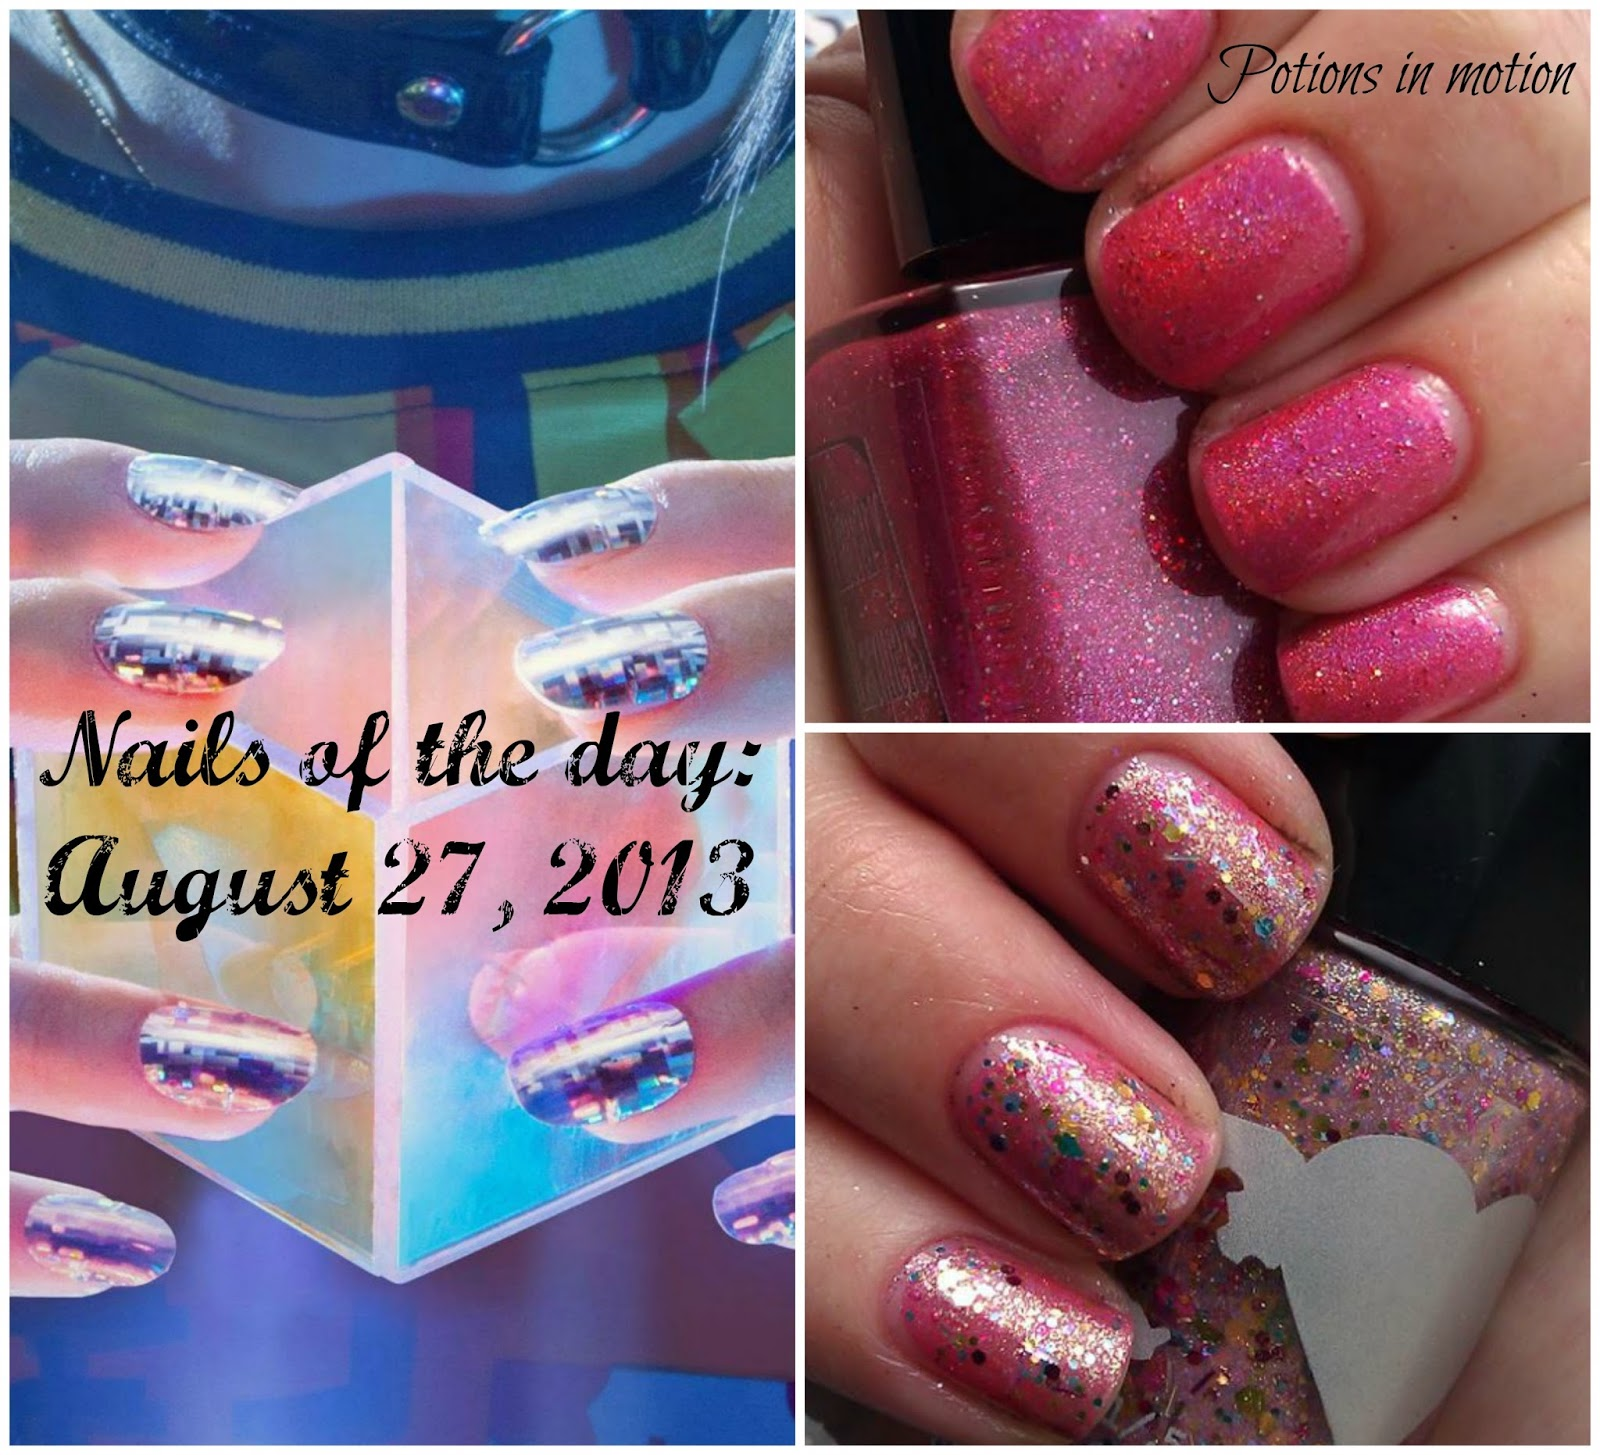 Potions In Motion Nail Blog Nails Of The Day August 27 2013 Frnd Cosmetics Uptown Girl Set I Took A Small Break Yesterday Having My Sort Put Me Creative Funk Then Got Lovely Package Mail From Reddit Friend